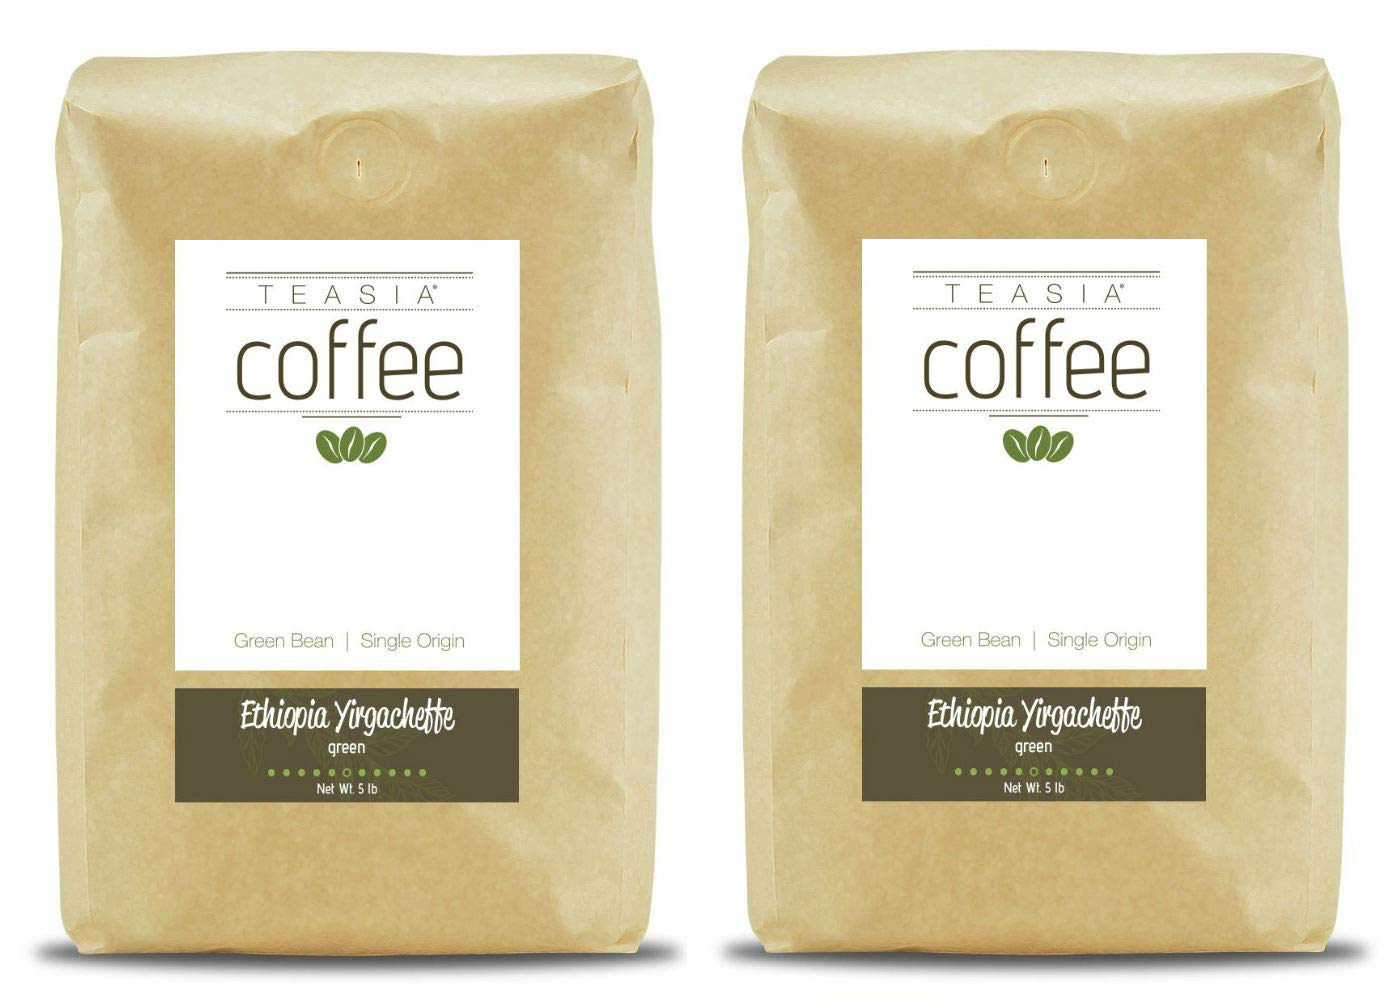 Teasia Coffee, Ethiopia Yirgacheffe, Single Origin Fair Trade, Green Unroasted Whole Coffee Beans, 5-Pound Bag (2-Pack)